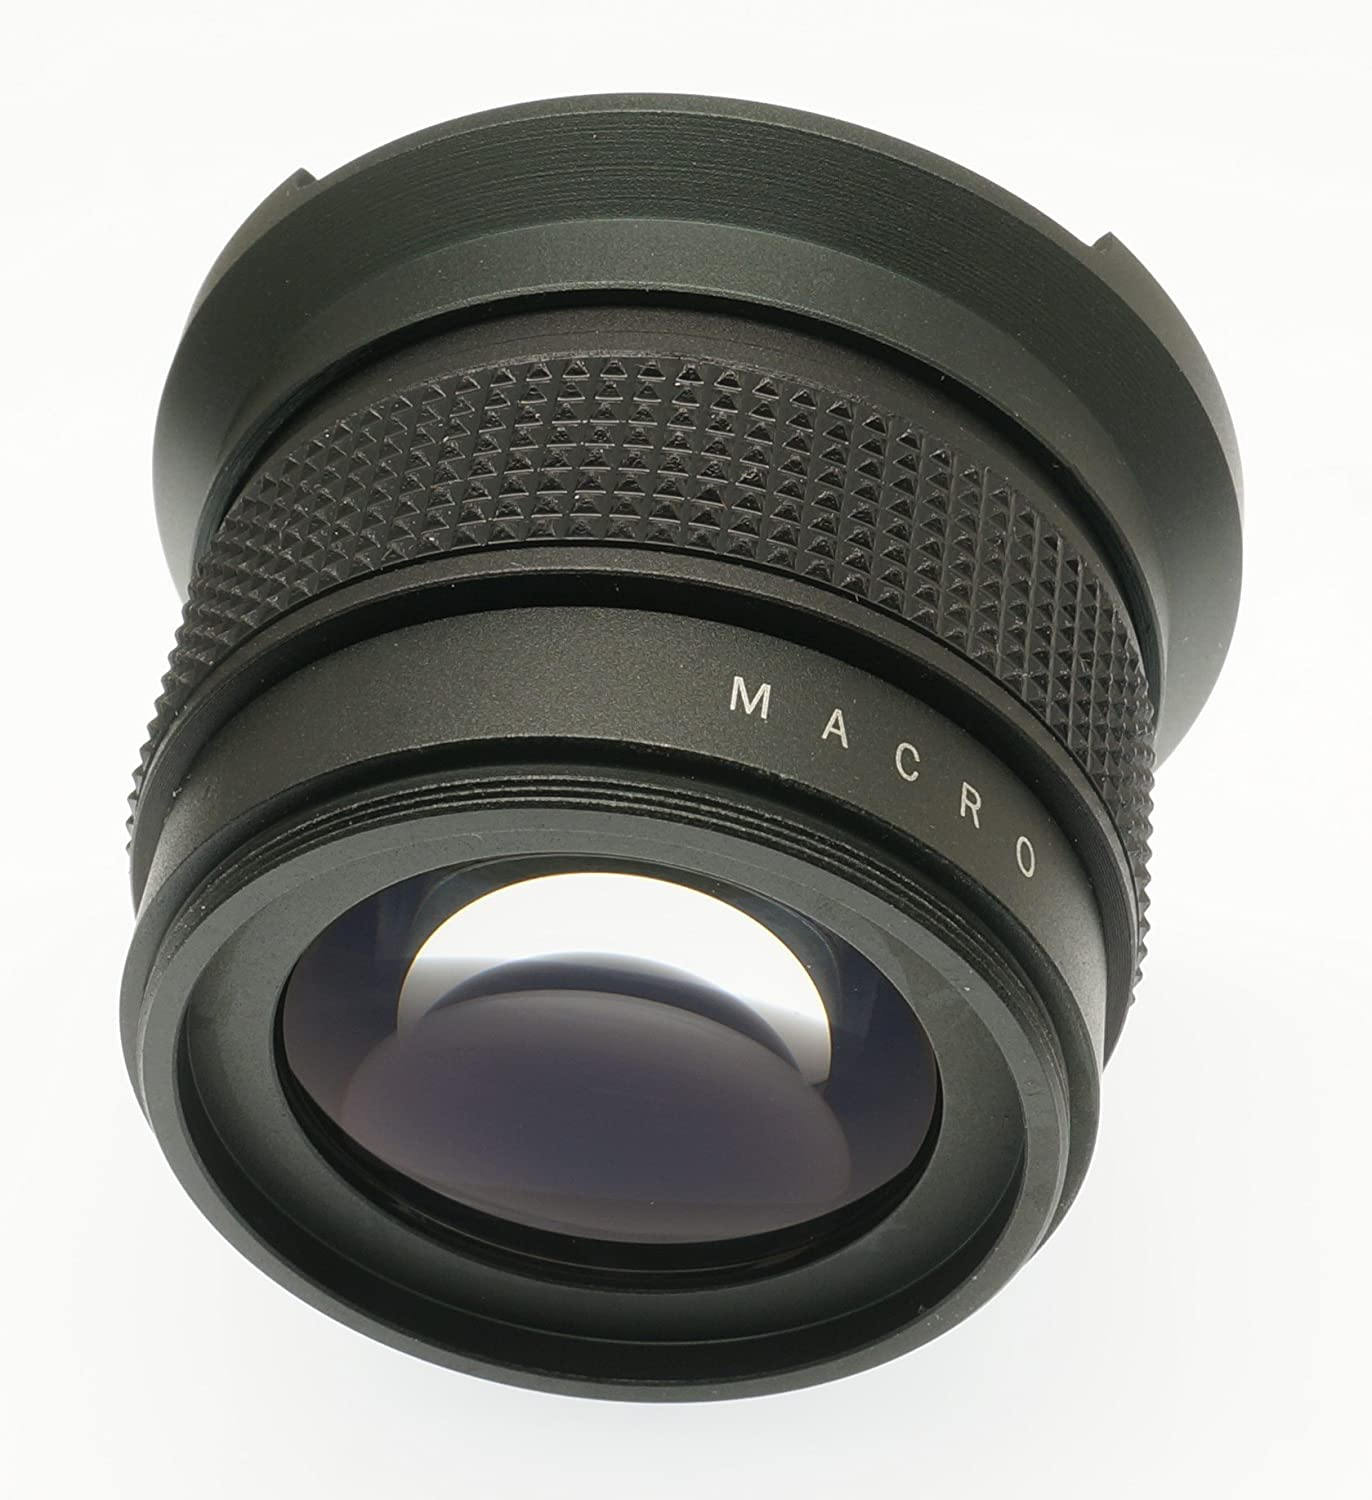 Gadget Place 0.35x High Definition Fisheye Lens with Macro for Nikon Coolpix P6000